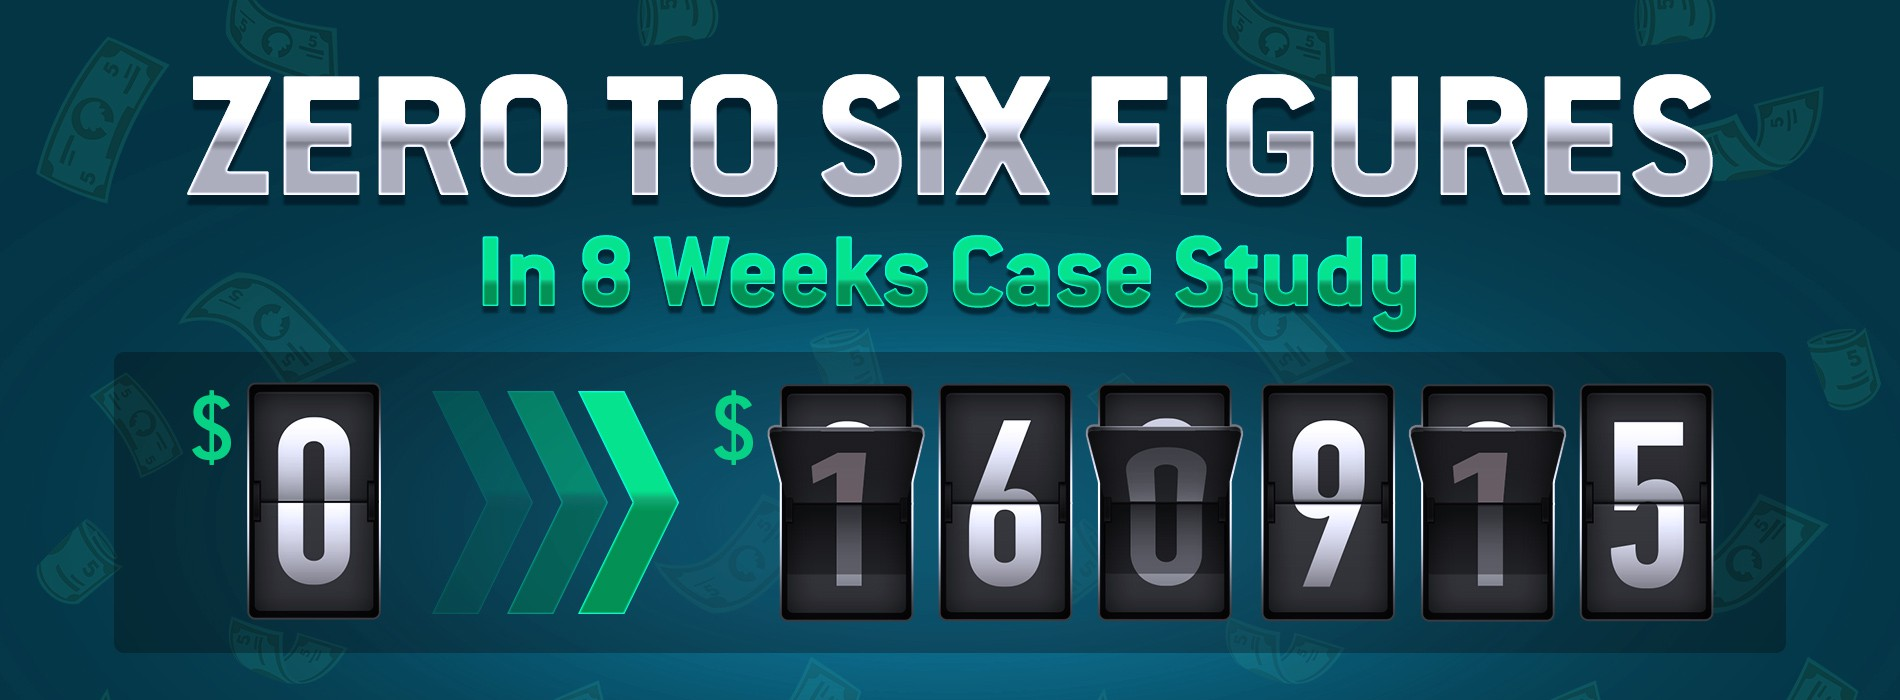 Case Study: Zero To Six Figures In 8 Weeks Case Study